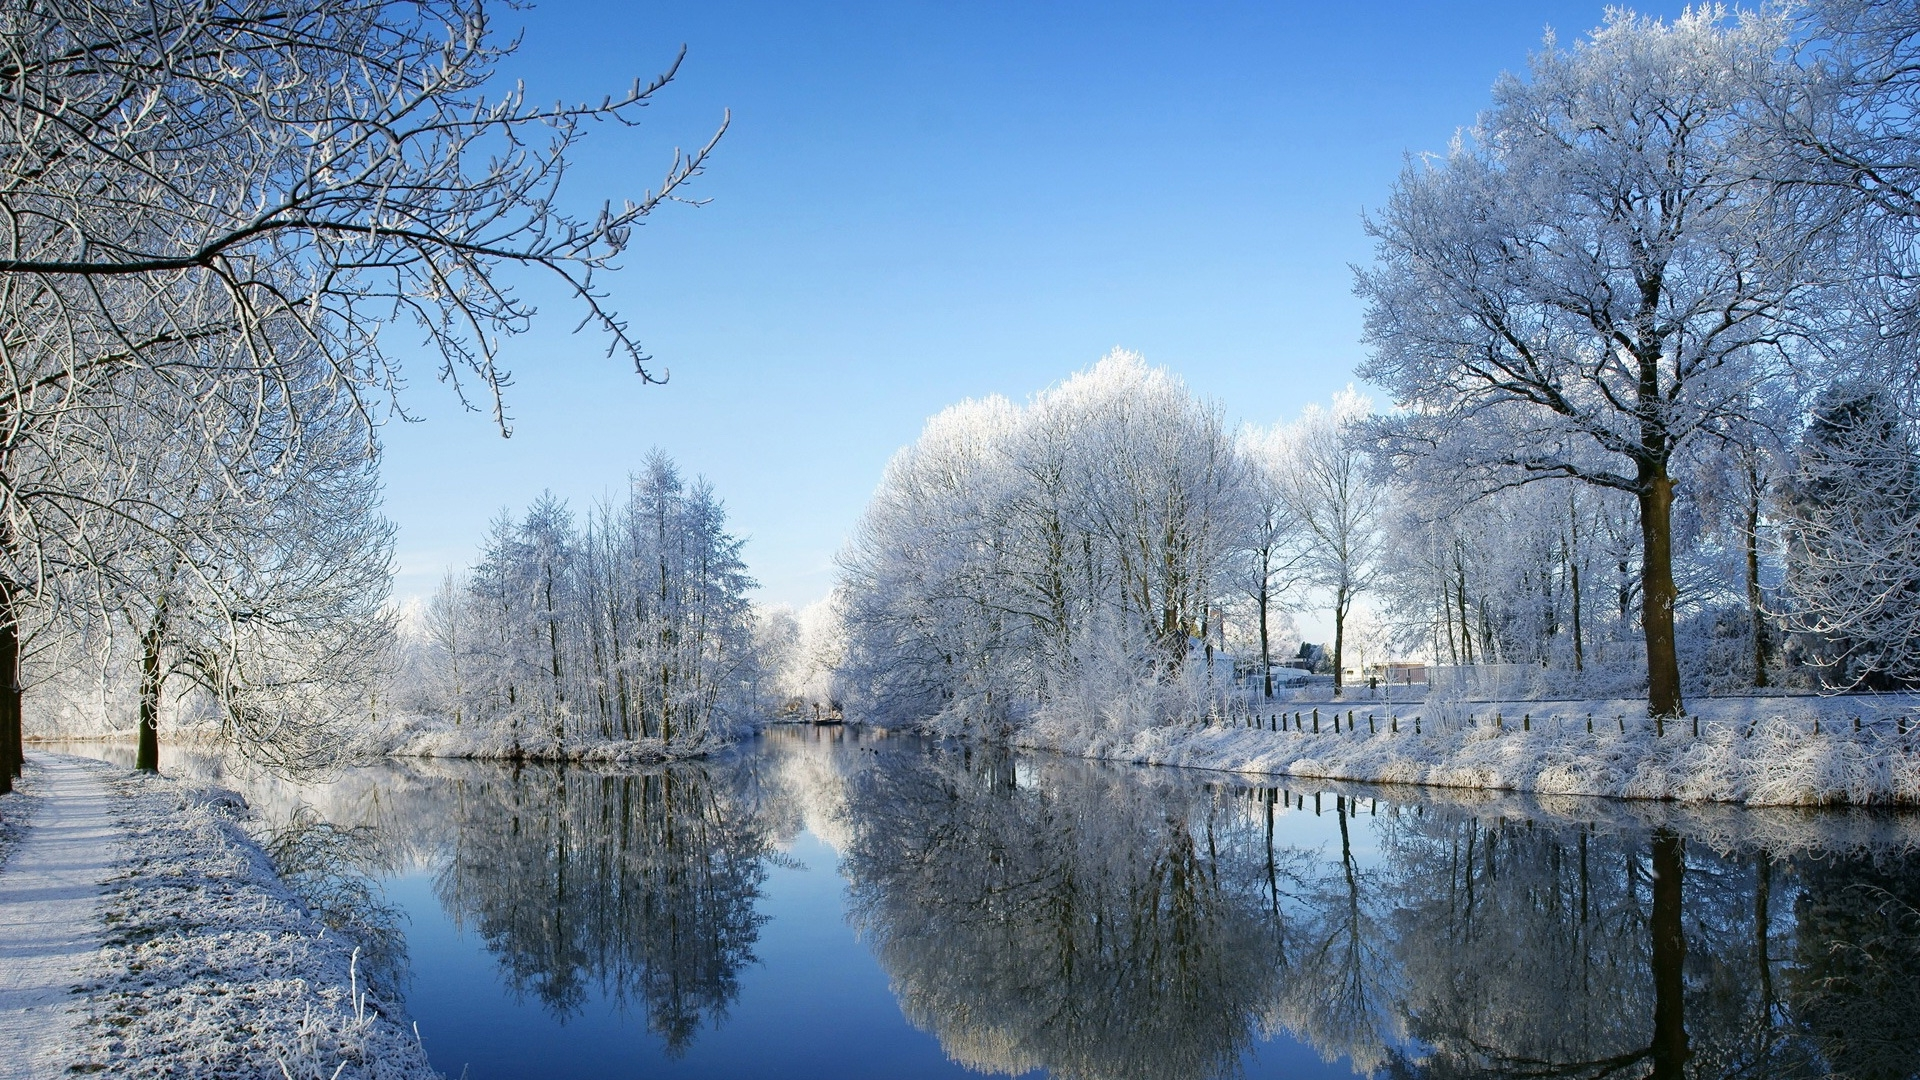 49056 download wallpaper Landscape, Winter, Nature, Snow, Lakes screensavers and pictures for free